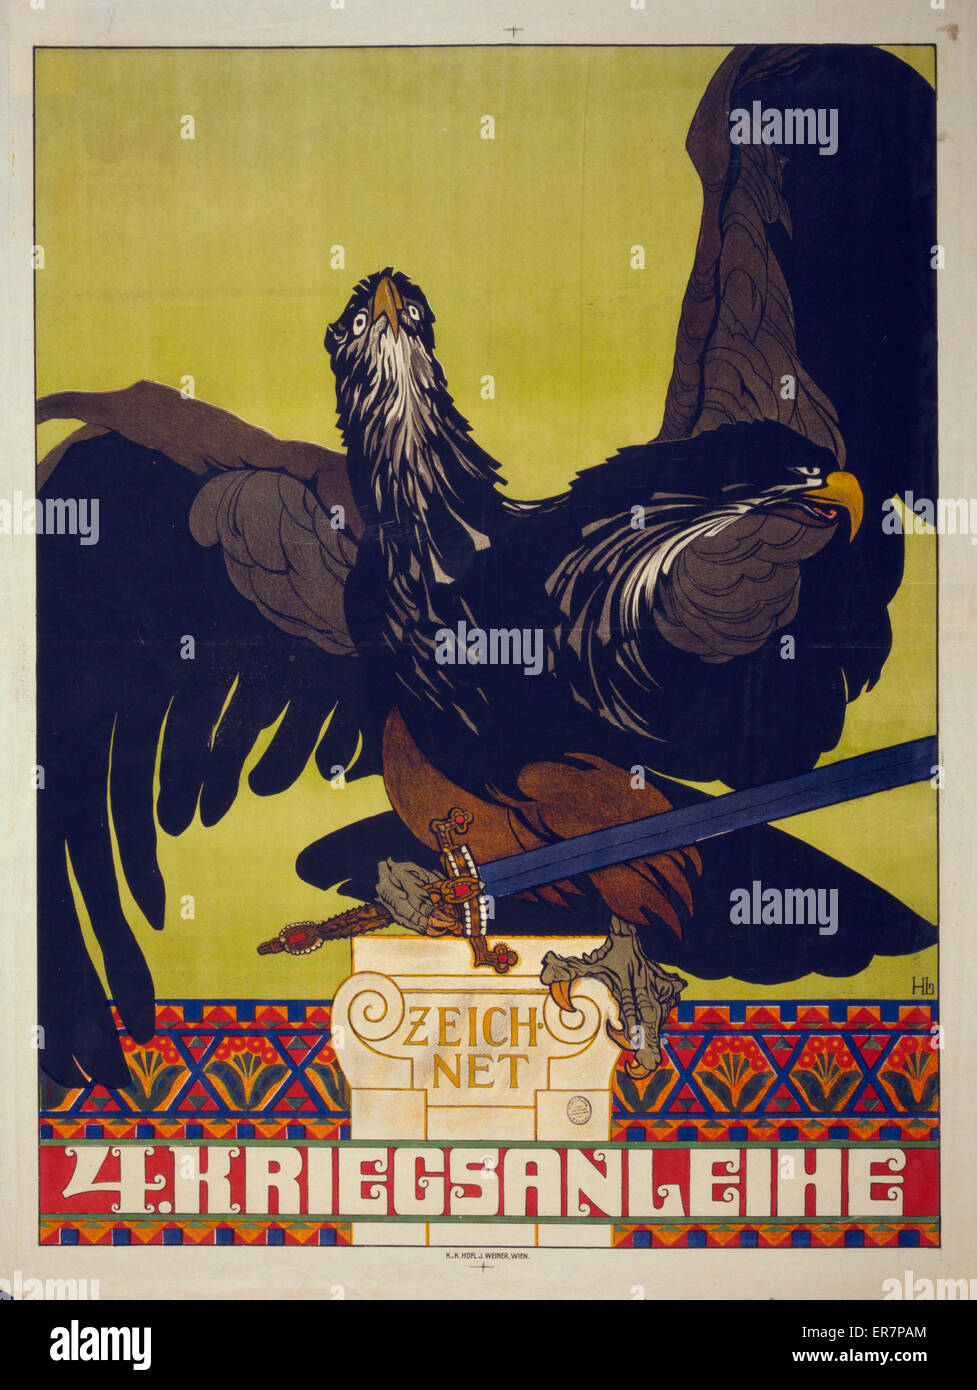 Zeichnet 4. Kriegsanleihe. Poster shows the doubled-headed Austrian eagle, holding a sword in its talons.Text announces - Stock Image